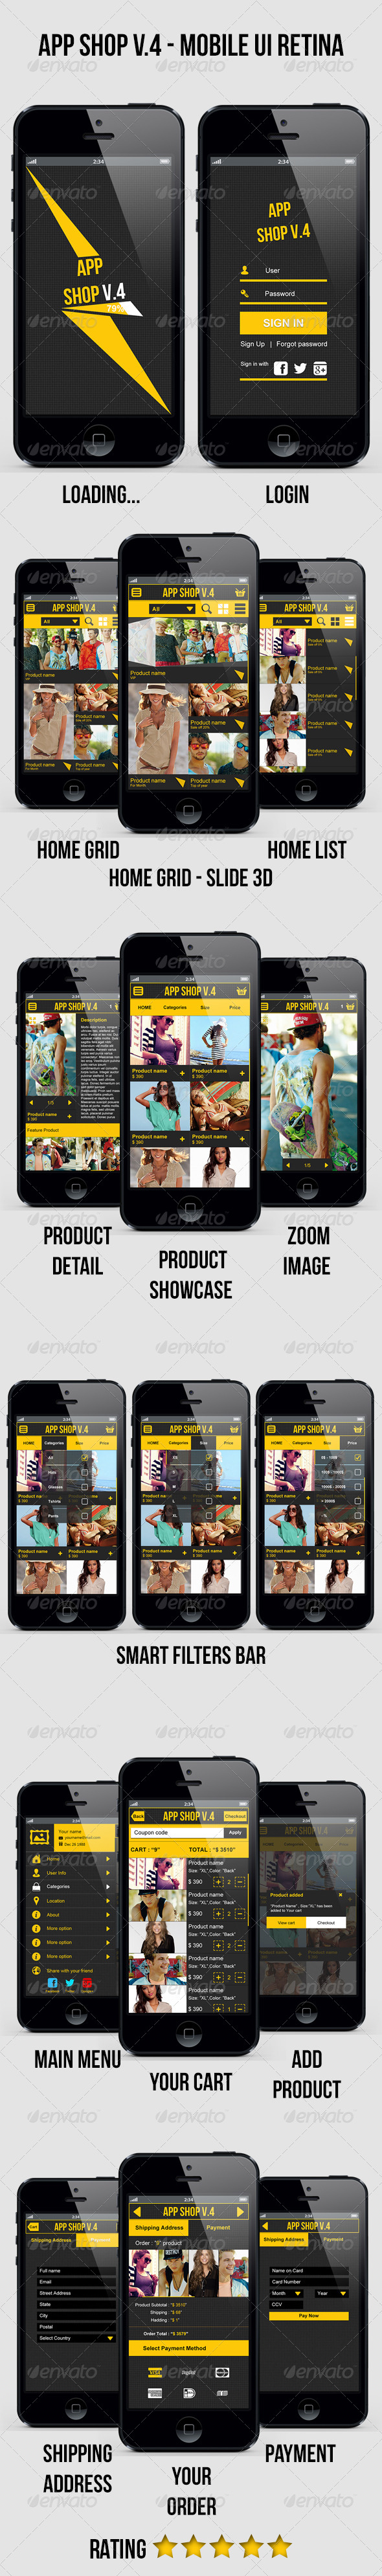 GraphicRiver App Shop V.4 Mobile E Commerce UI Retina 4760327